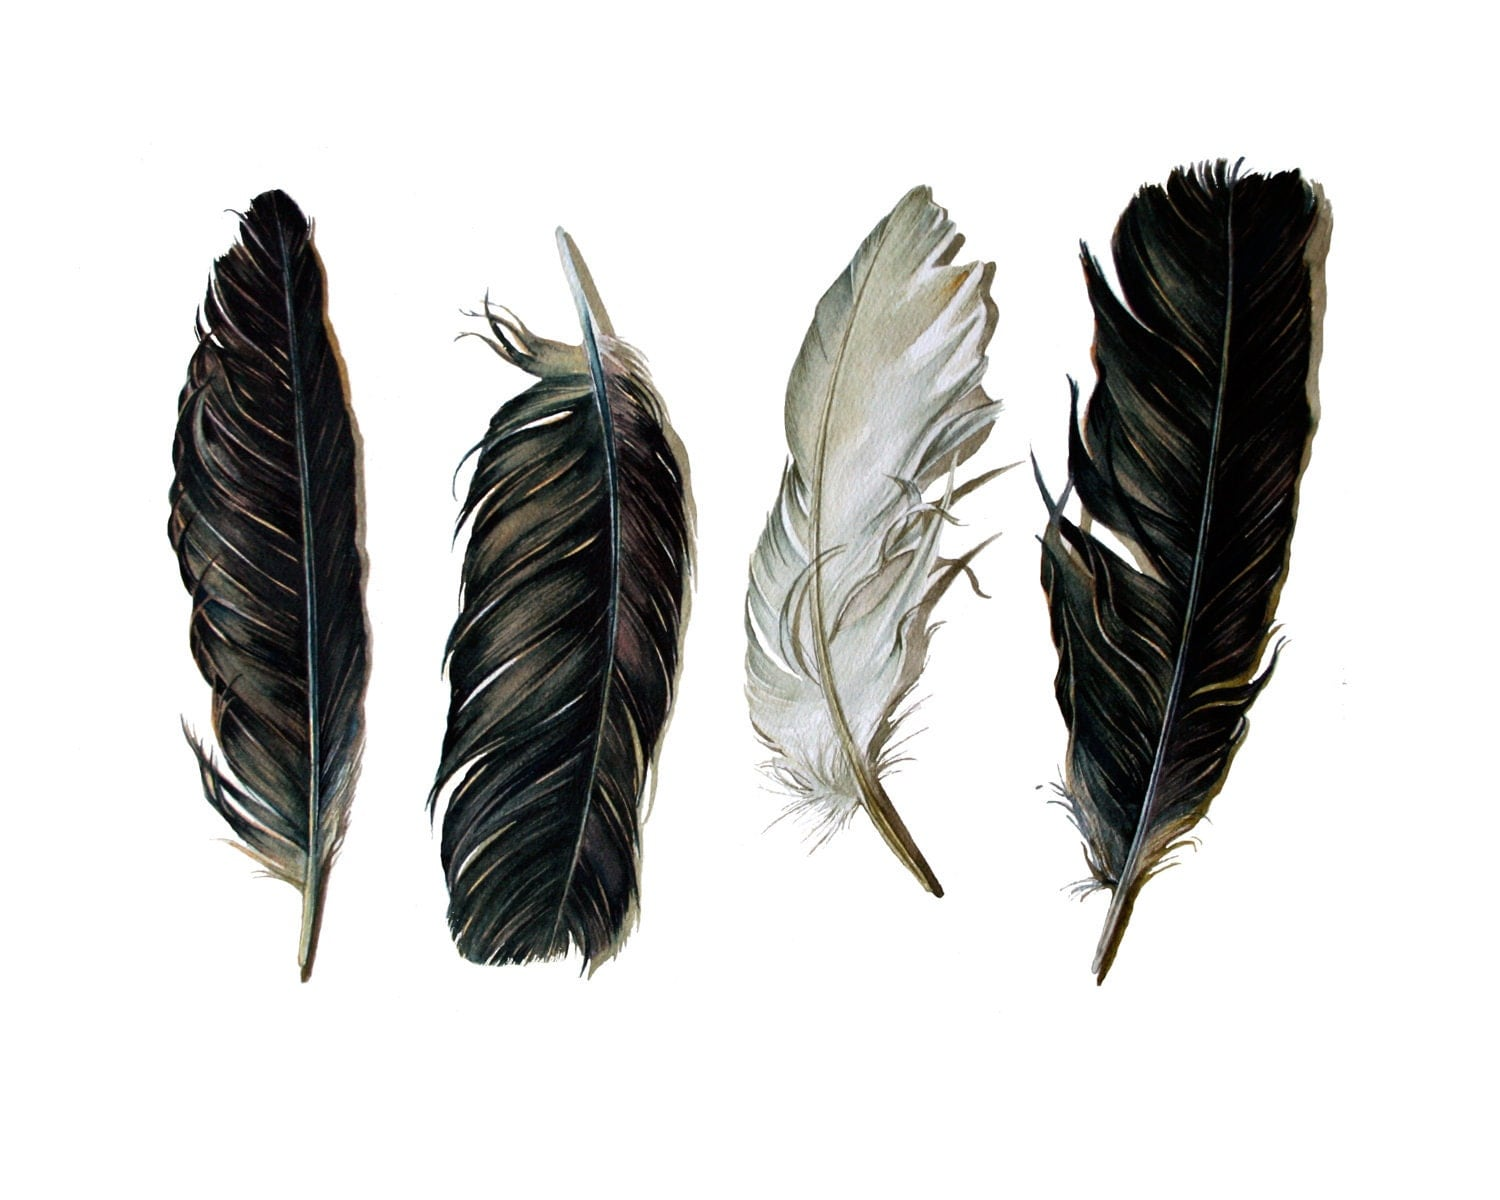 Spirit Feathers Archival Print Of The Watercolor Painting Of